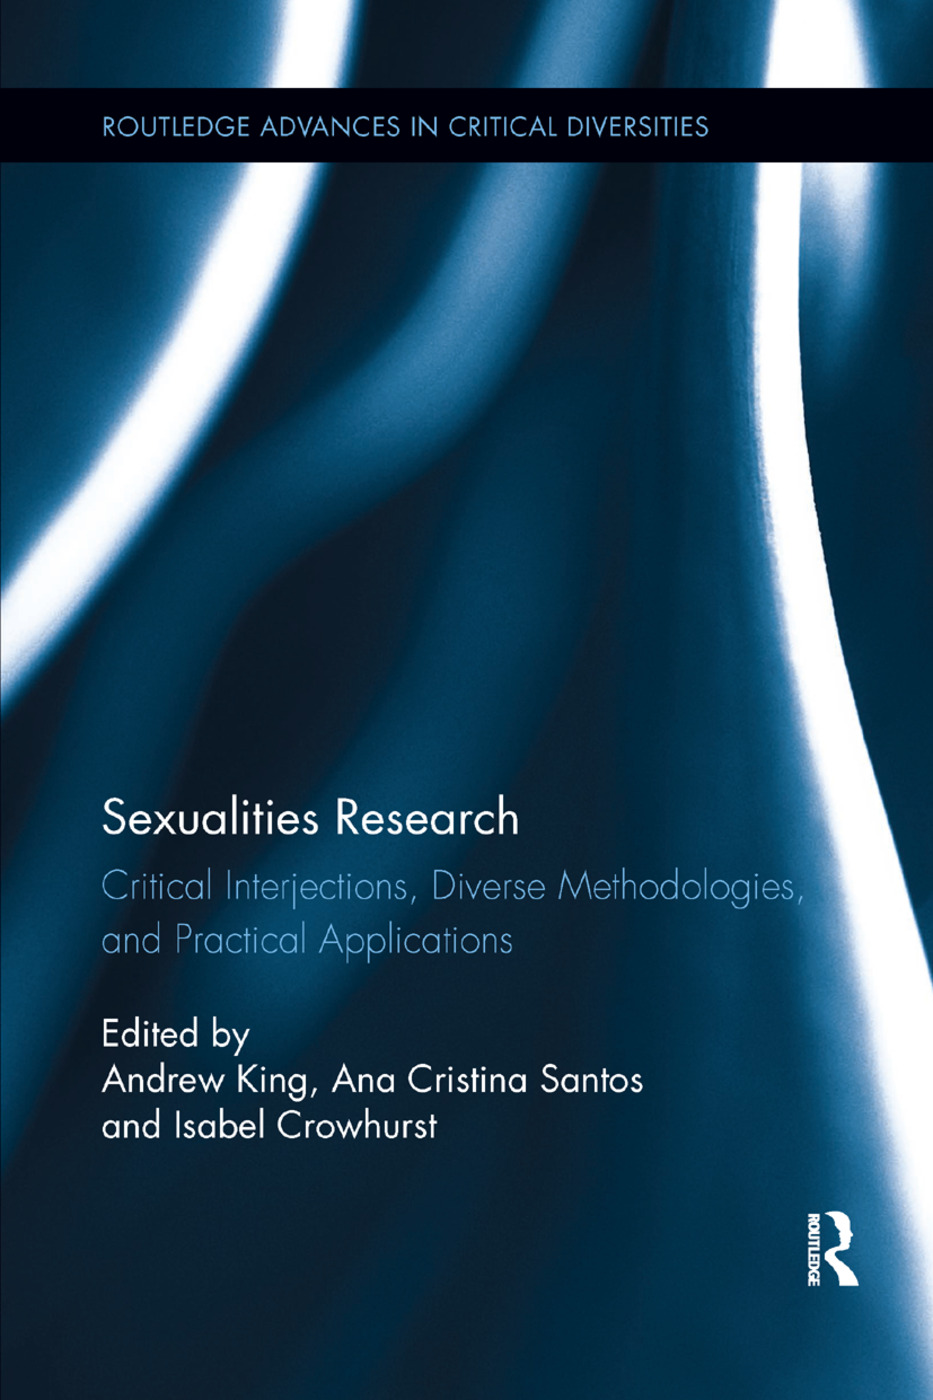 Sexualities Research: Critical Interjections, Diverse Methodologies, and Practical Applications book cover